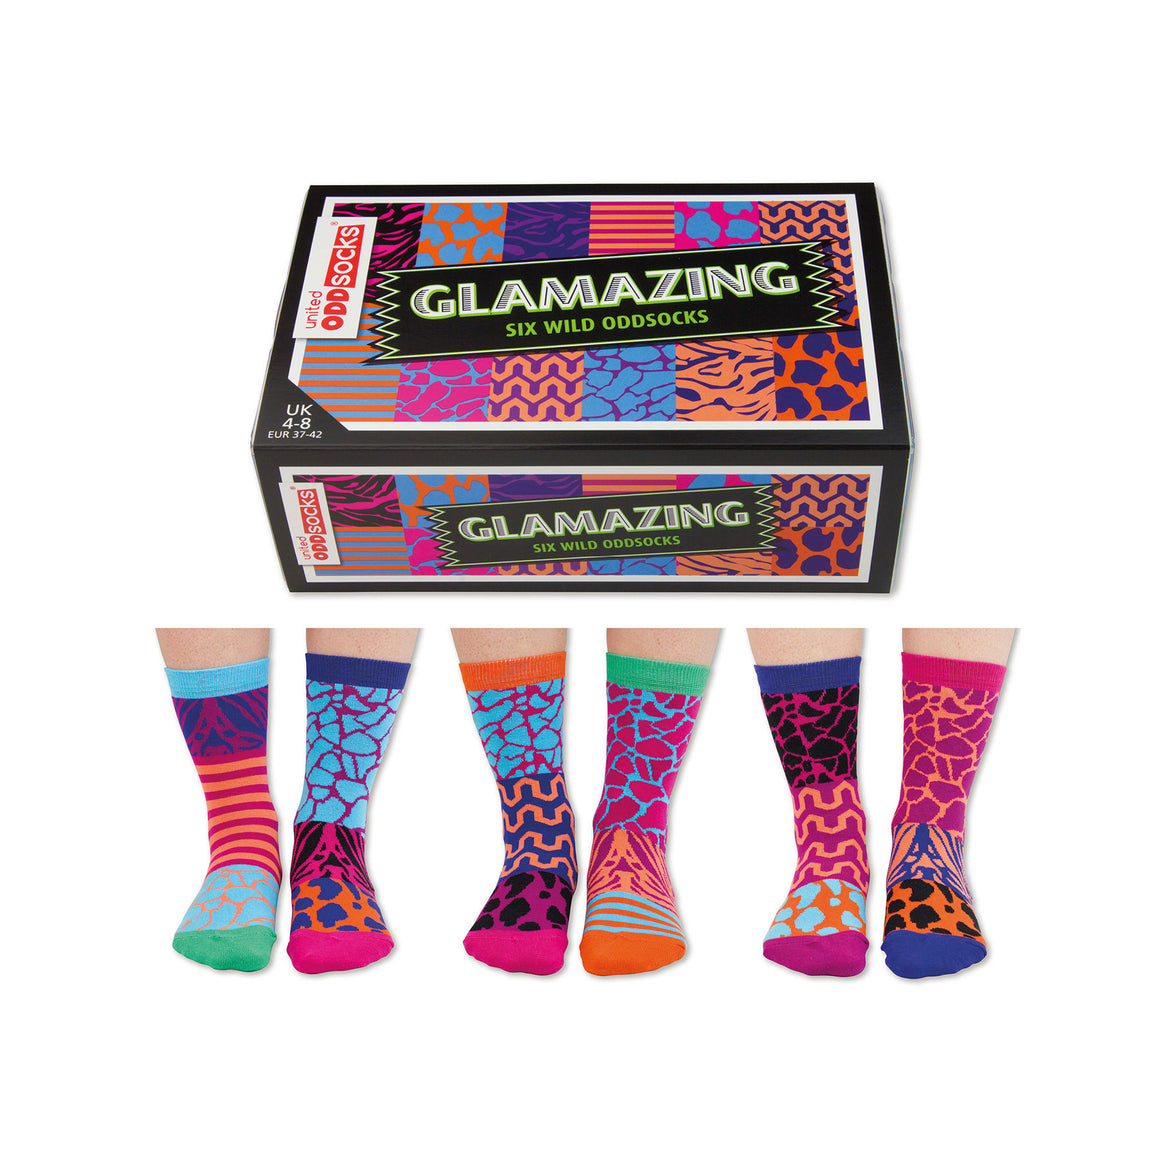 United Odd Socks Glamazing Ladies Gift Box